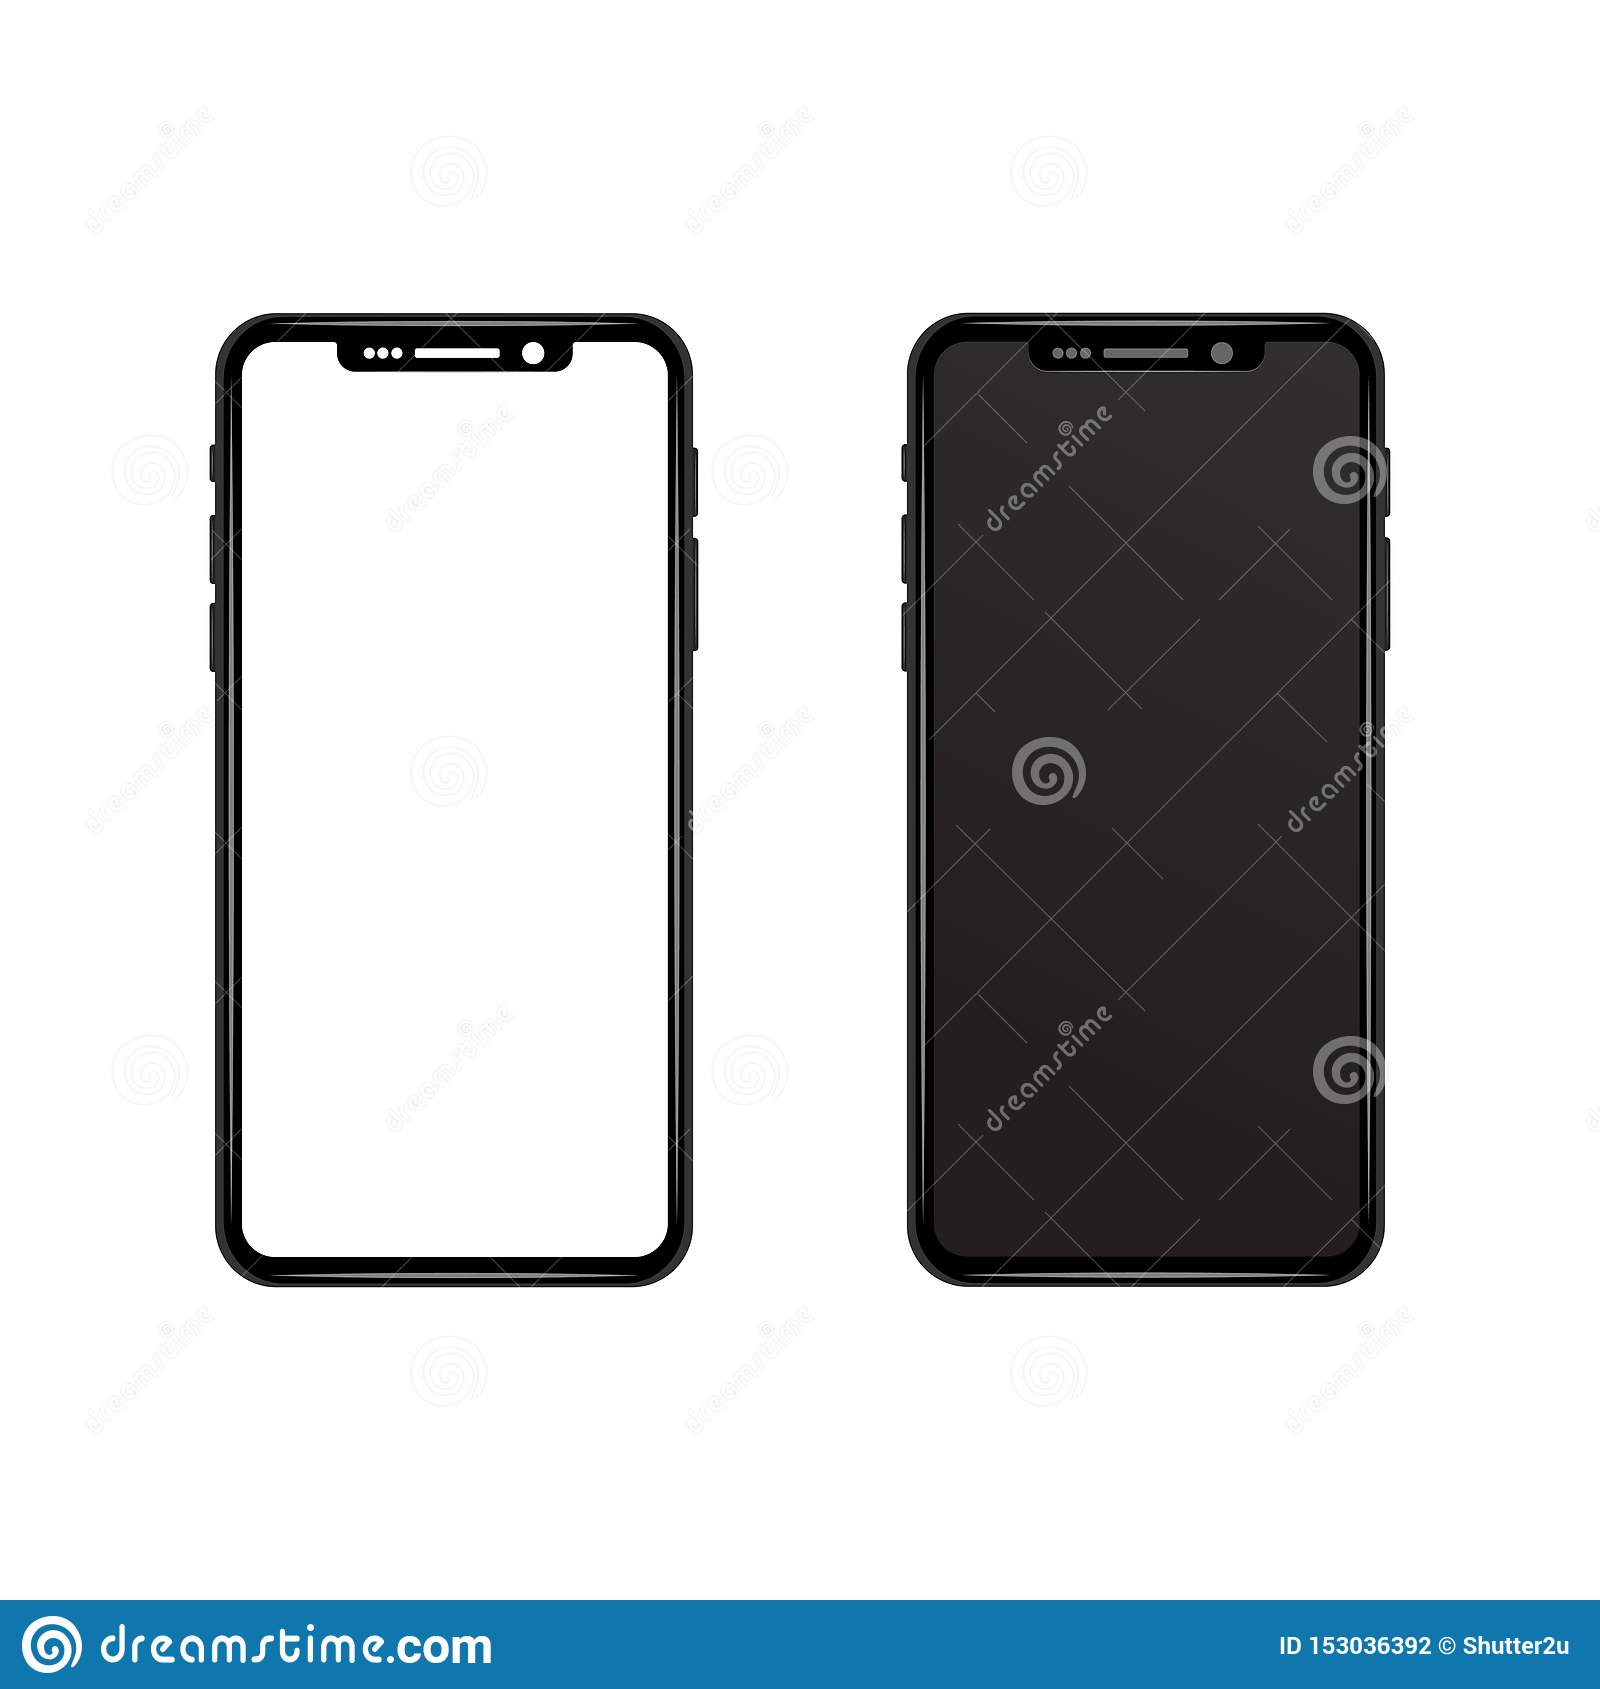 New Smartphone Wallpaper: Black Gray Slim Phone With White And Black Blank Screen